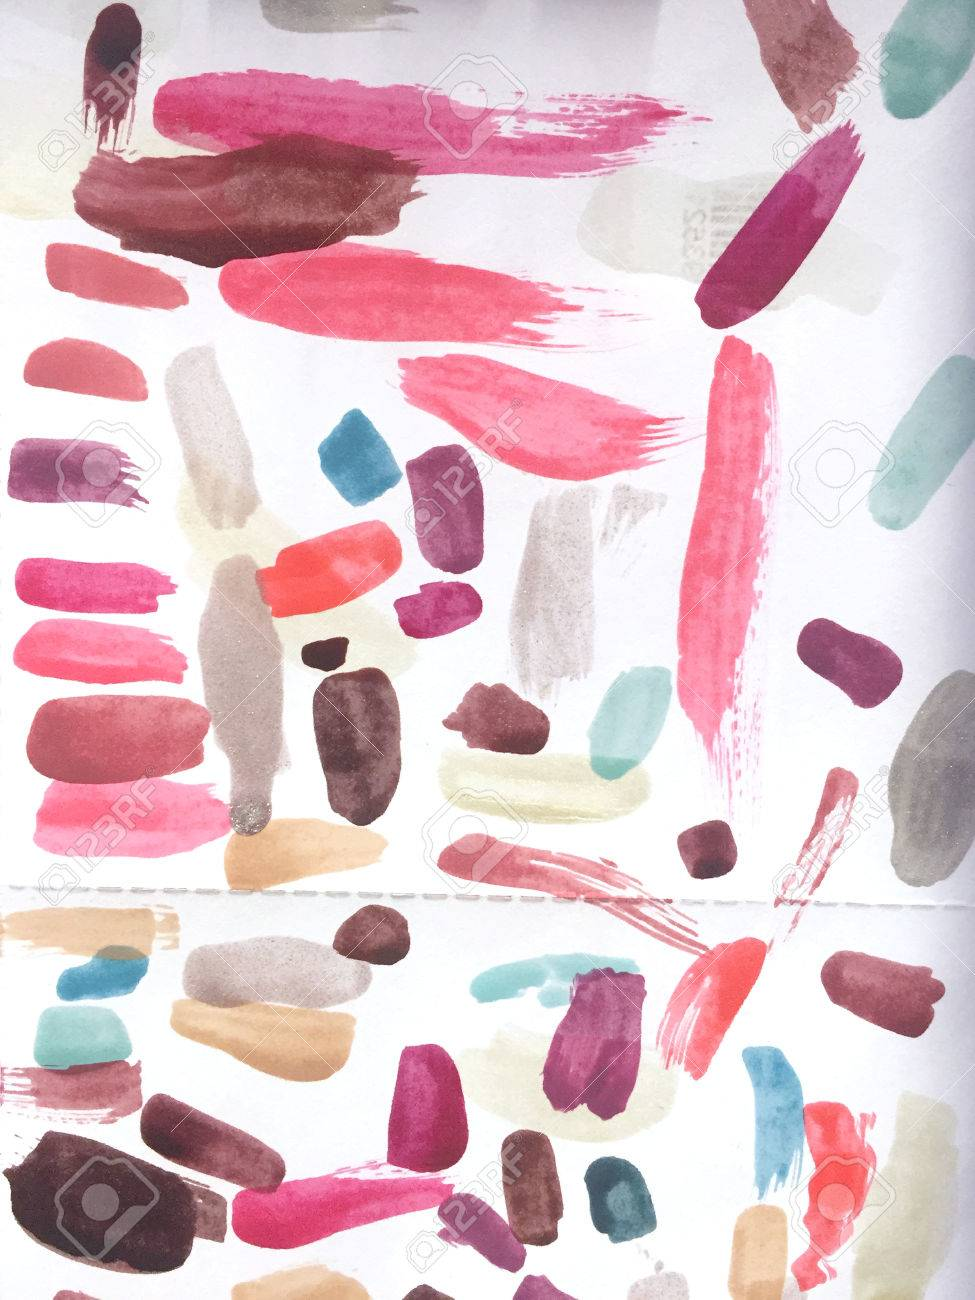 Nail Polish Samples On White Paper Stock Photo, Picture And Royalty ...